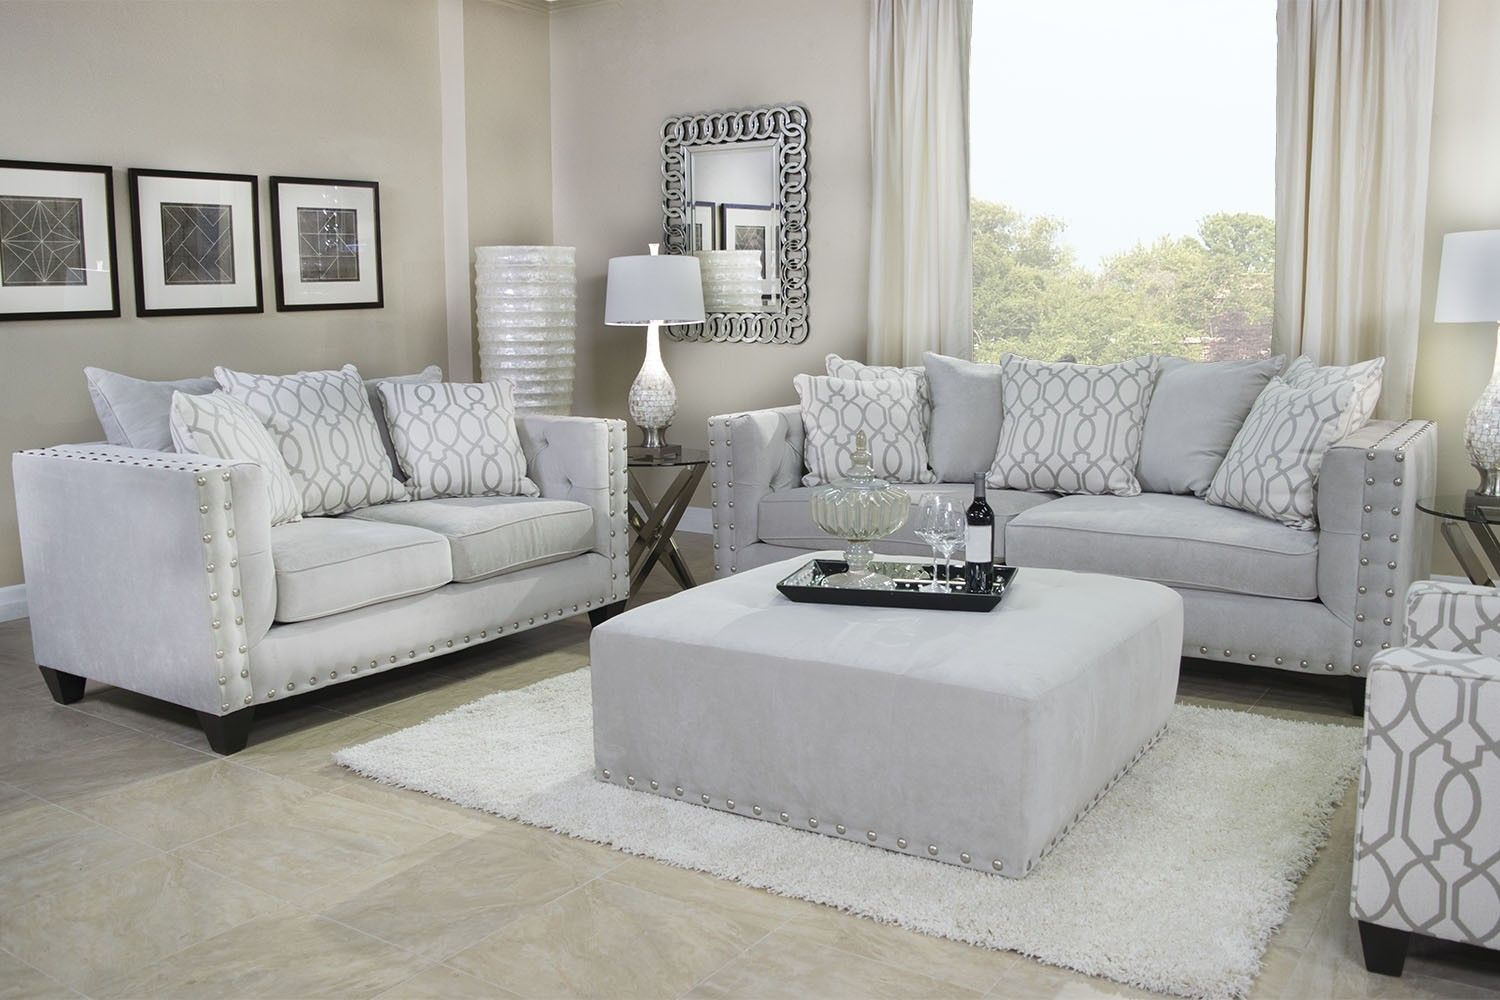 Mor Furniture For Less The Roxanne Living Room  Mor Furniture Fascinating Living Rooms Sets Decorating Inspiration